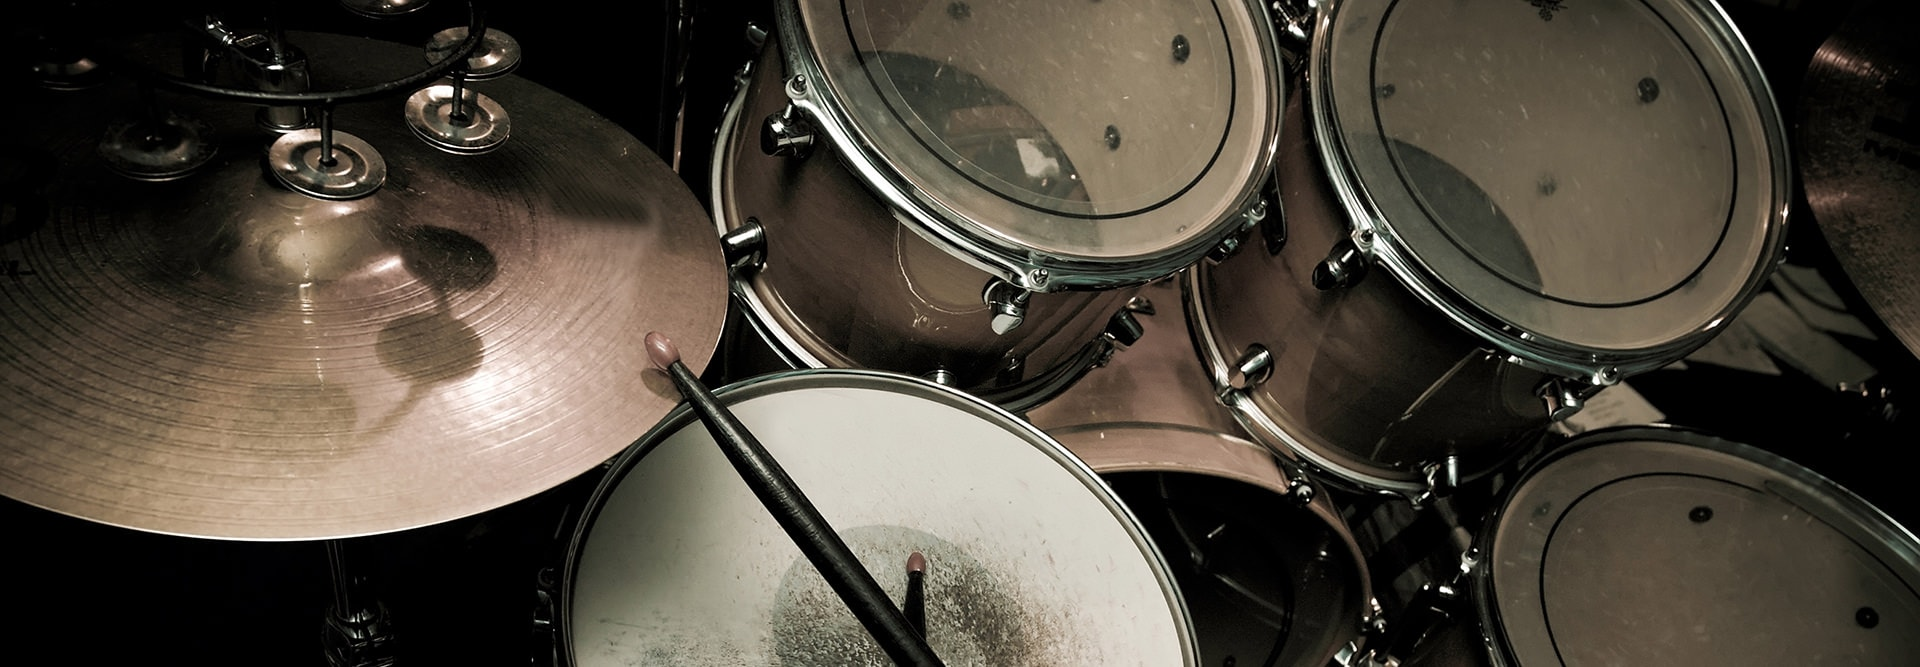 learn to play drums, how to play drums, drum lessons